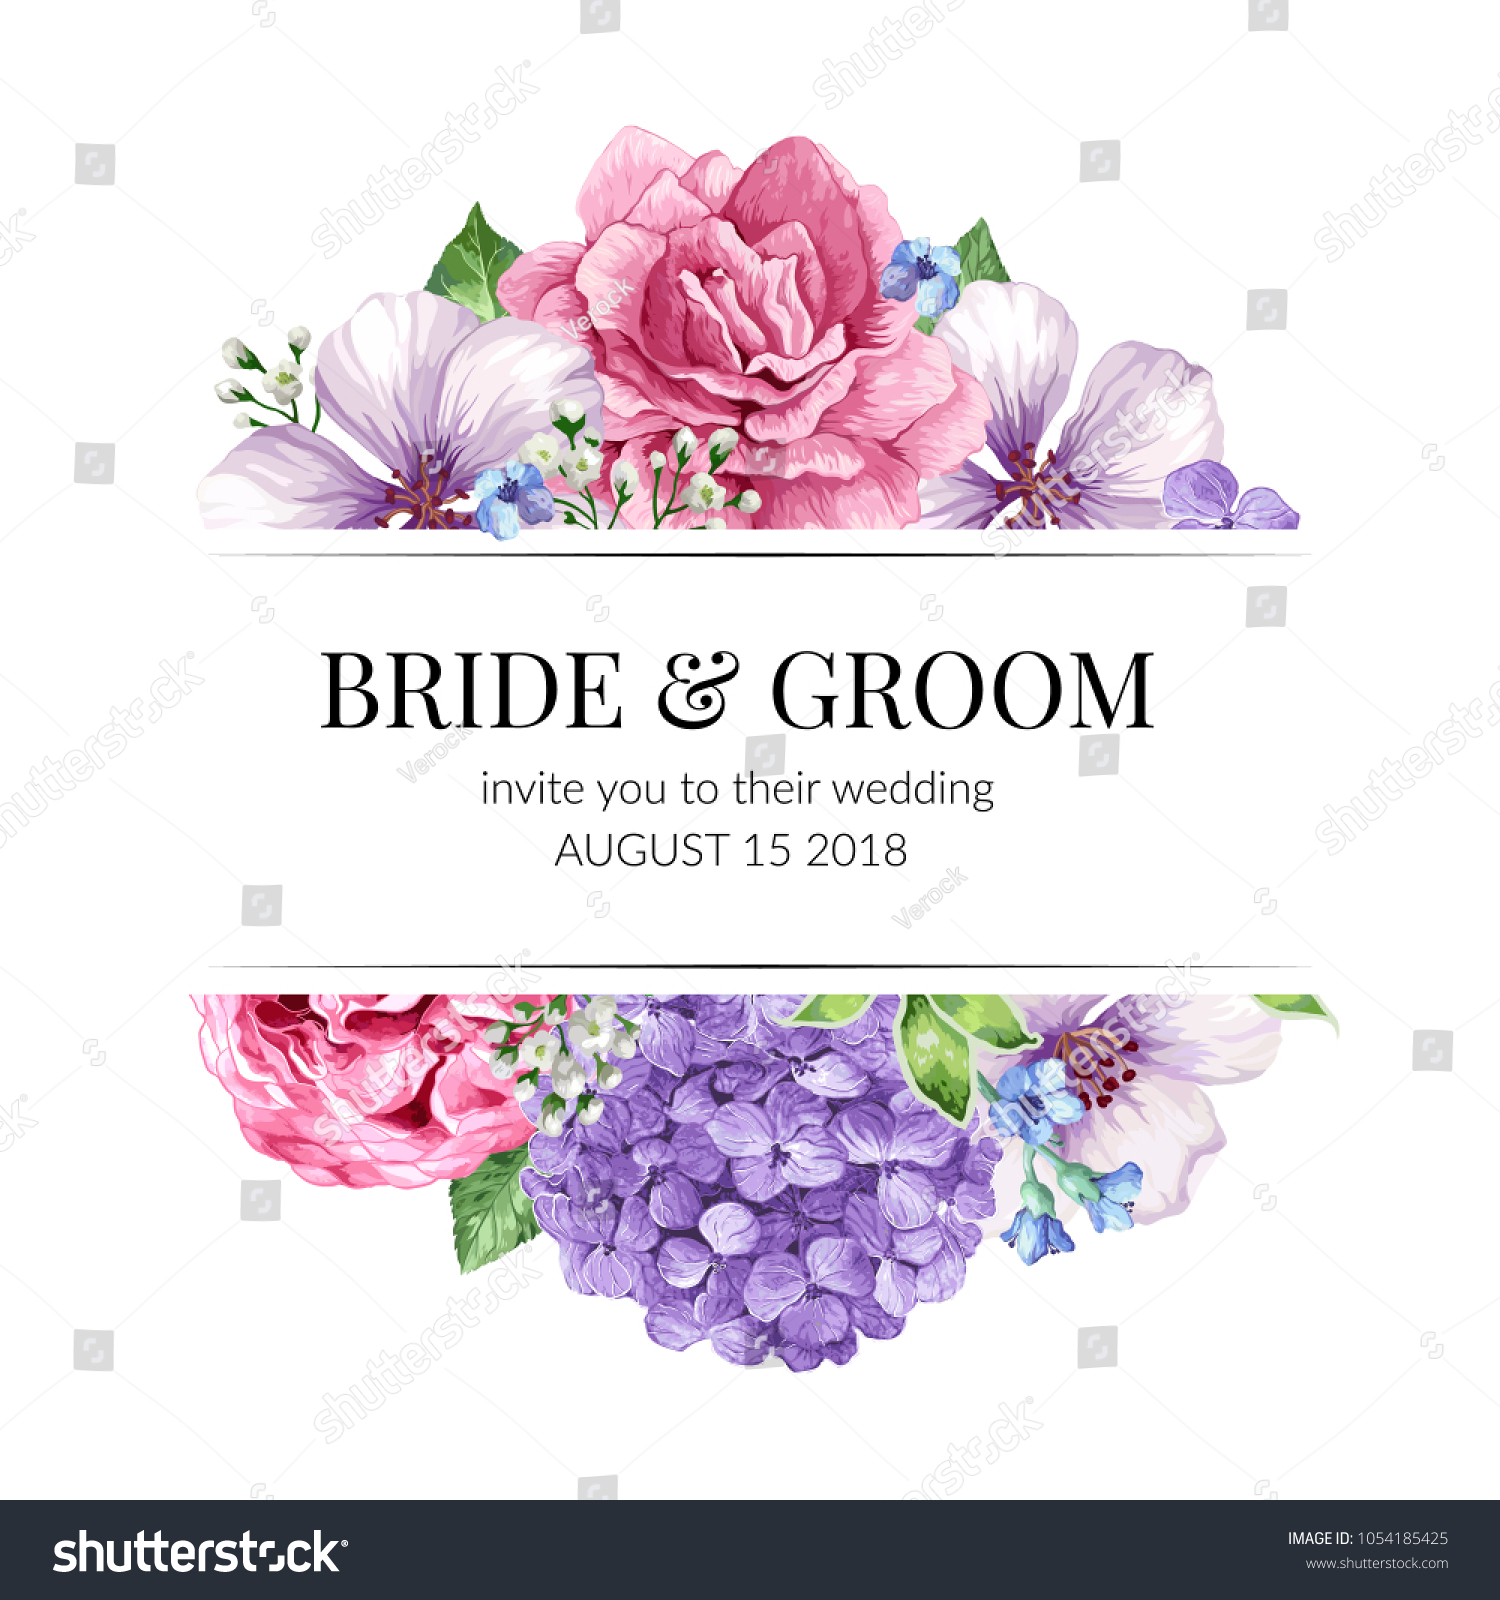 Wedding Invitation Card Flowers Watercolor Style Stock Vector